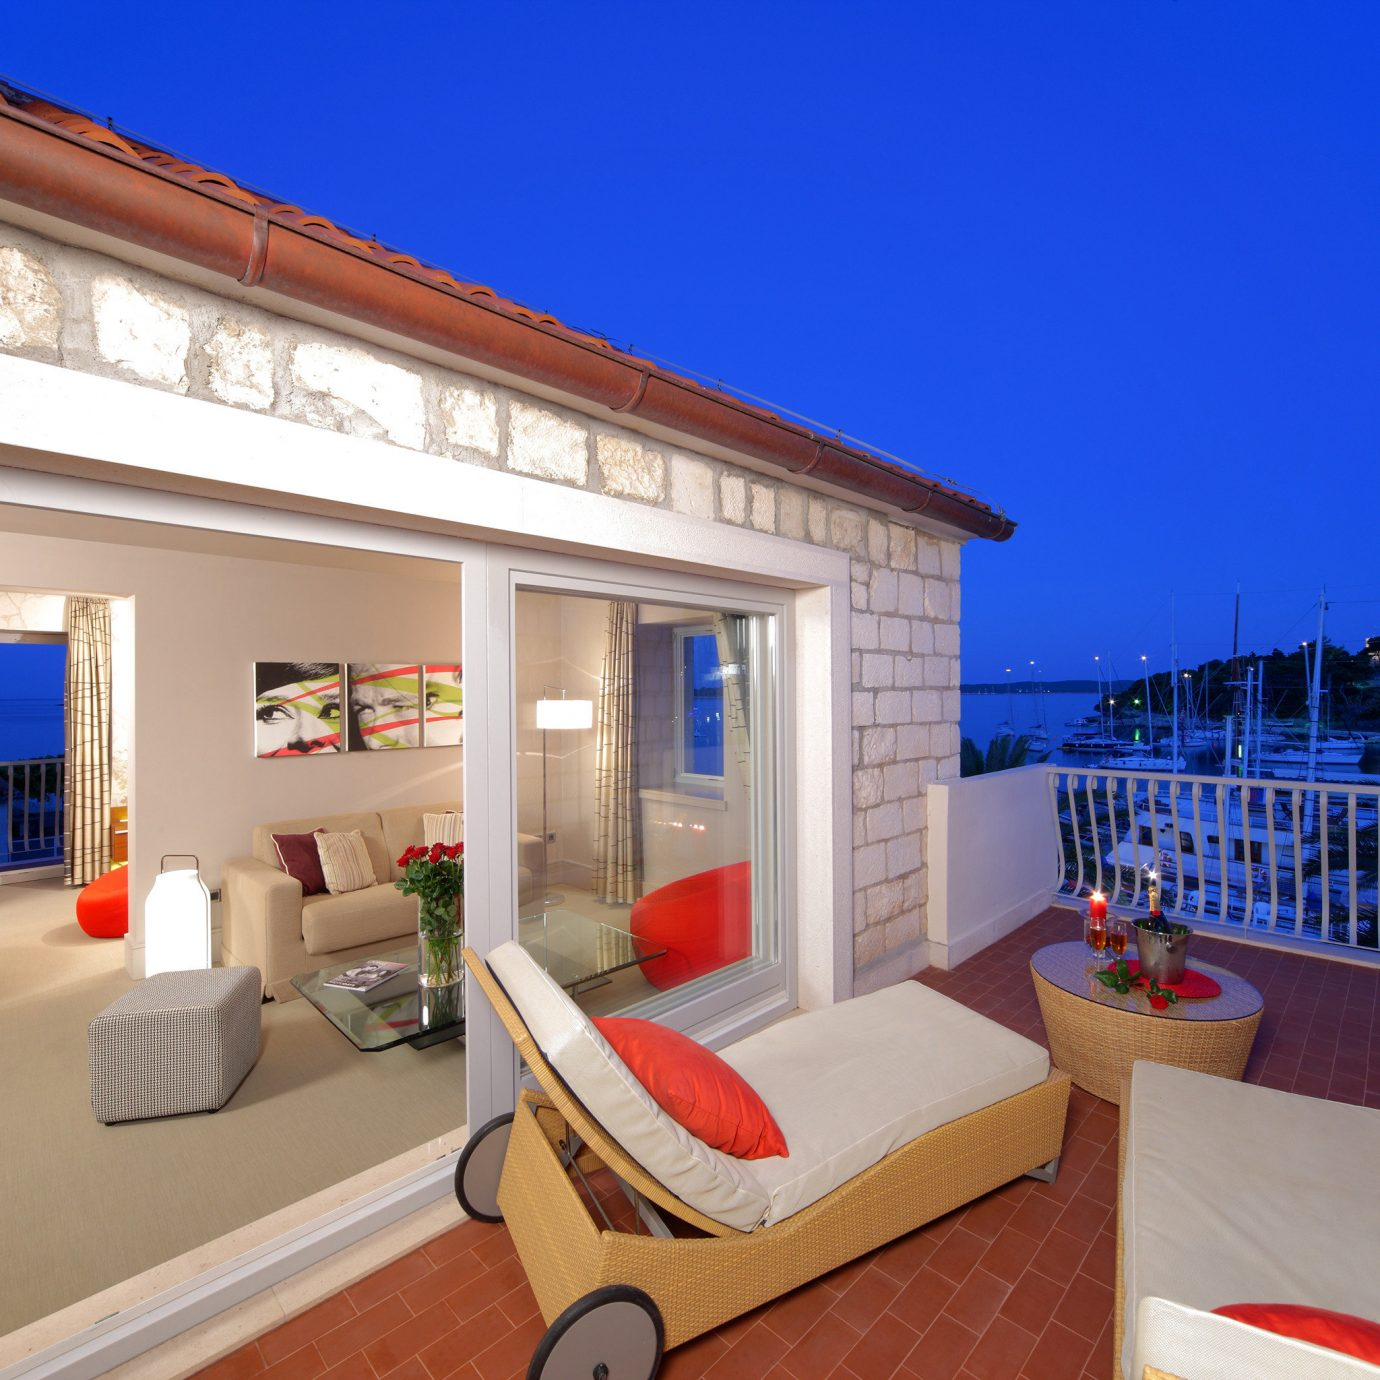 Balcony Deck Outdoors Scenic views Suite Waterfront property house Villa home condominium Resort cottage living room mansion